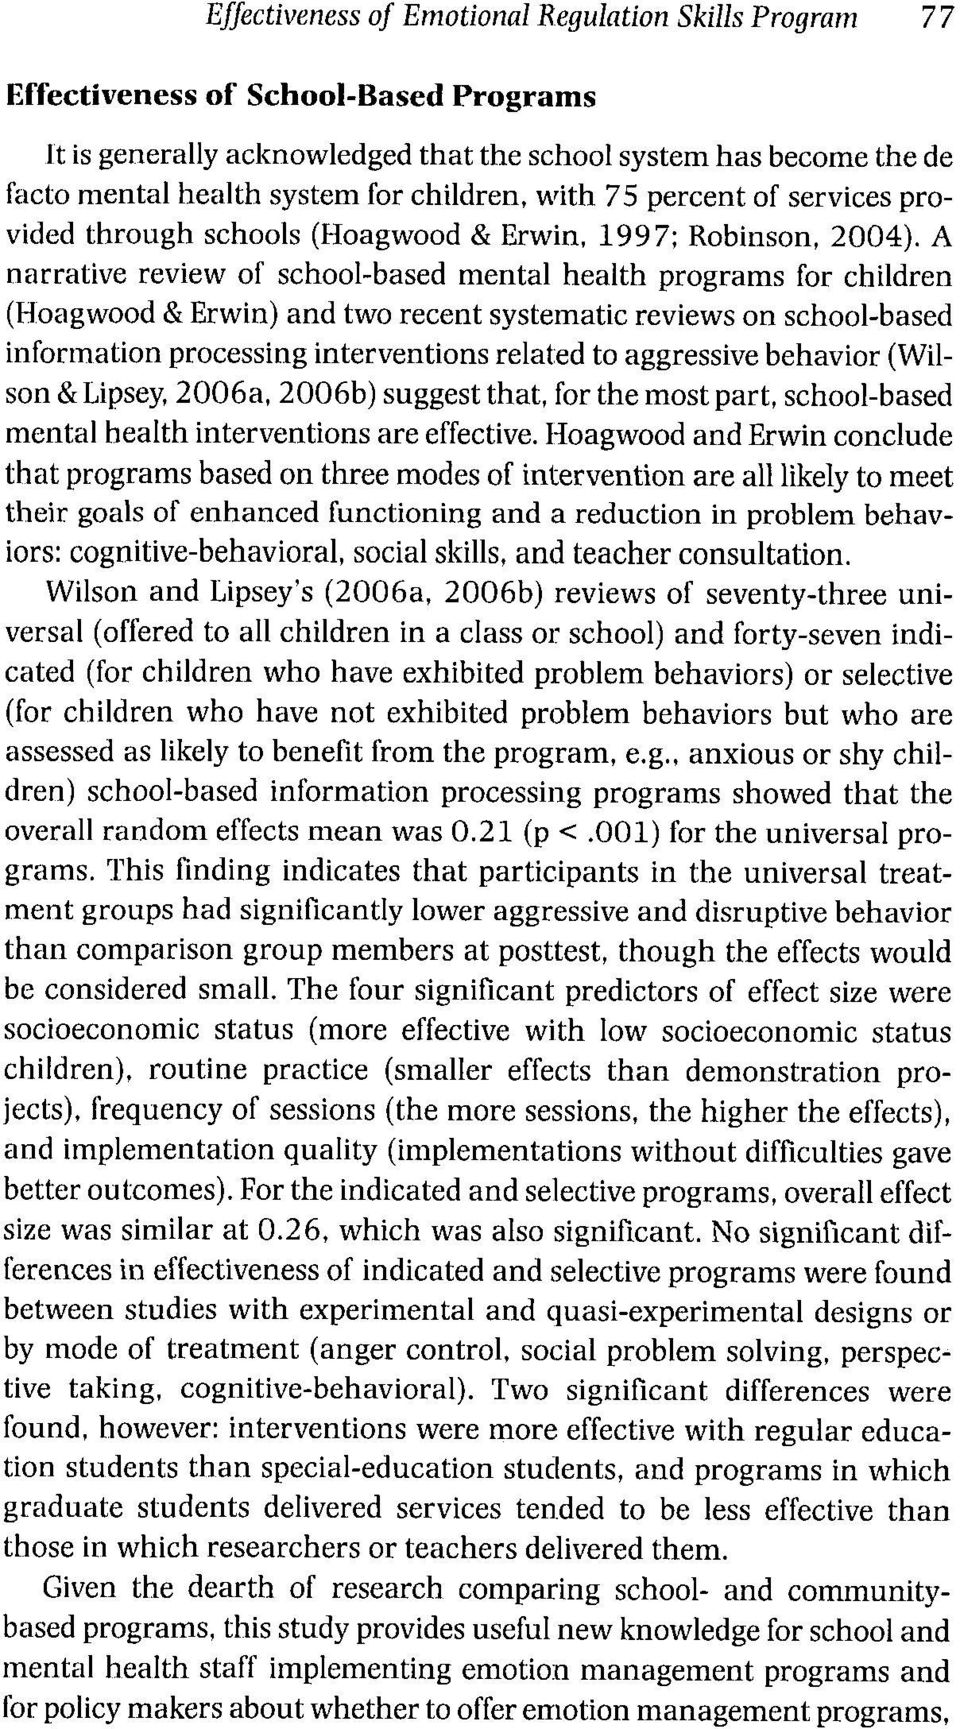 A narrative review of school-based mental health programs for children (Hoagwood & Erwin) and two recent systematic reviews on school-based information processing interventions related to aggressive